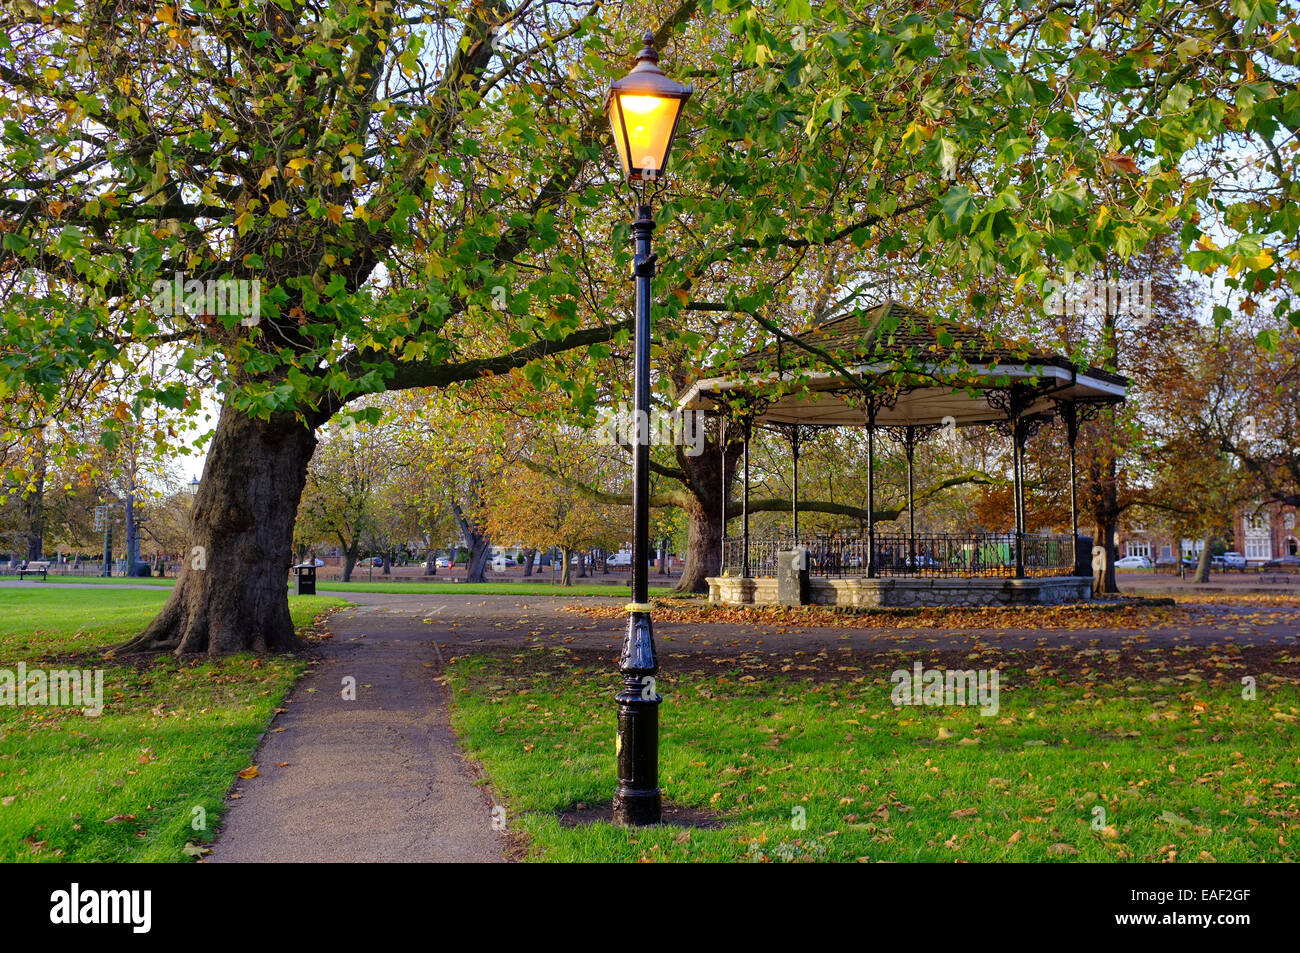 vintage street lamp and bandstand in Bedford Park, Bedfordshire - Stock Image